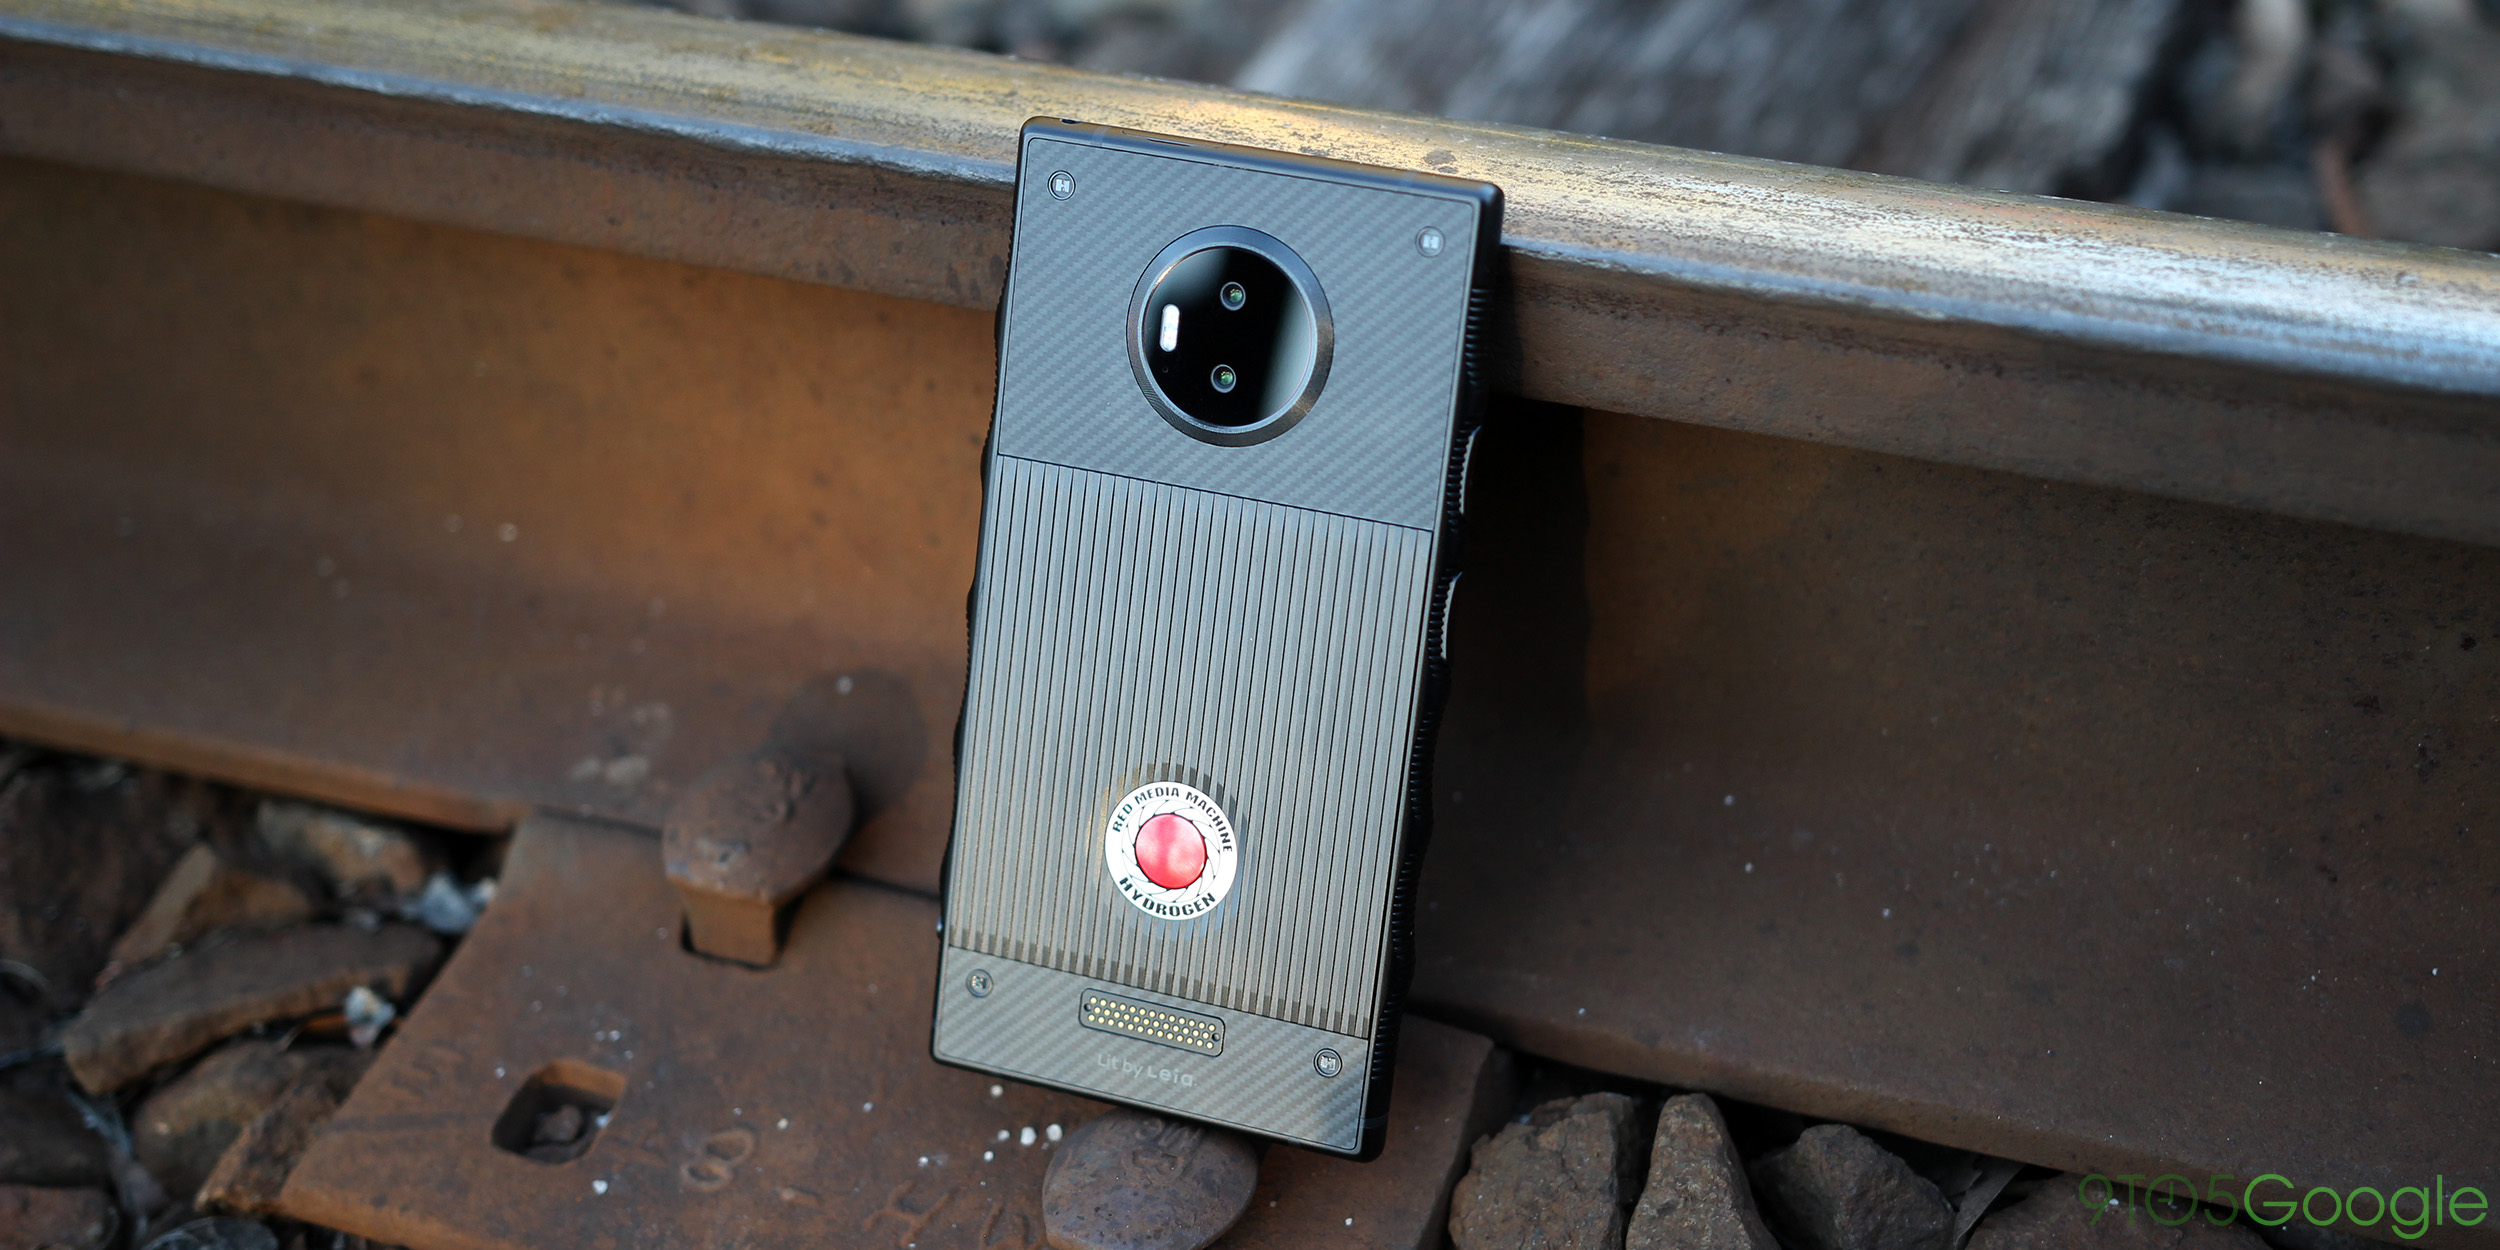 Lit Chinois But Red Hydrogen One Review Unique But Almost No One Should Buy It